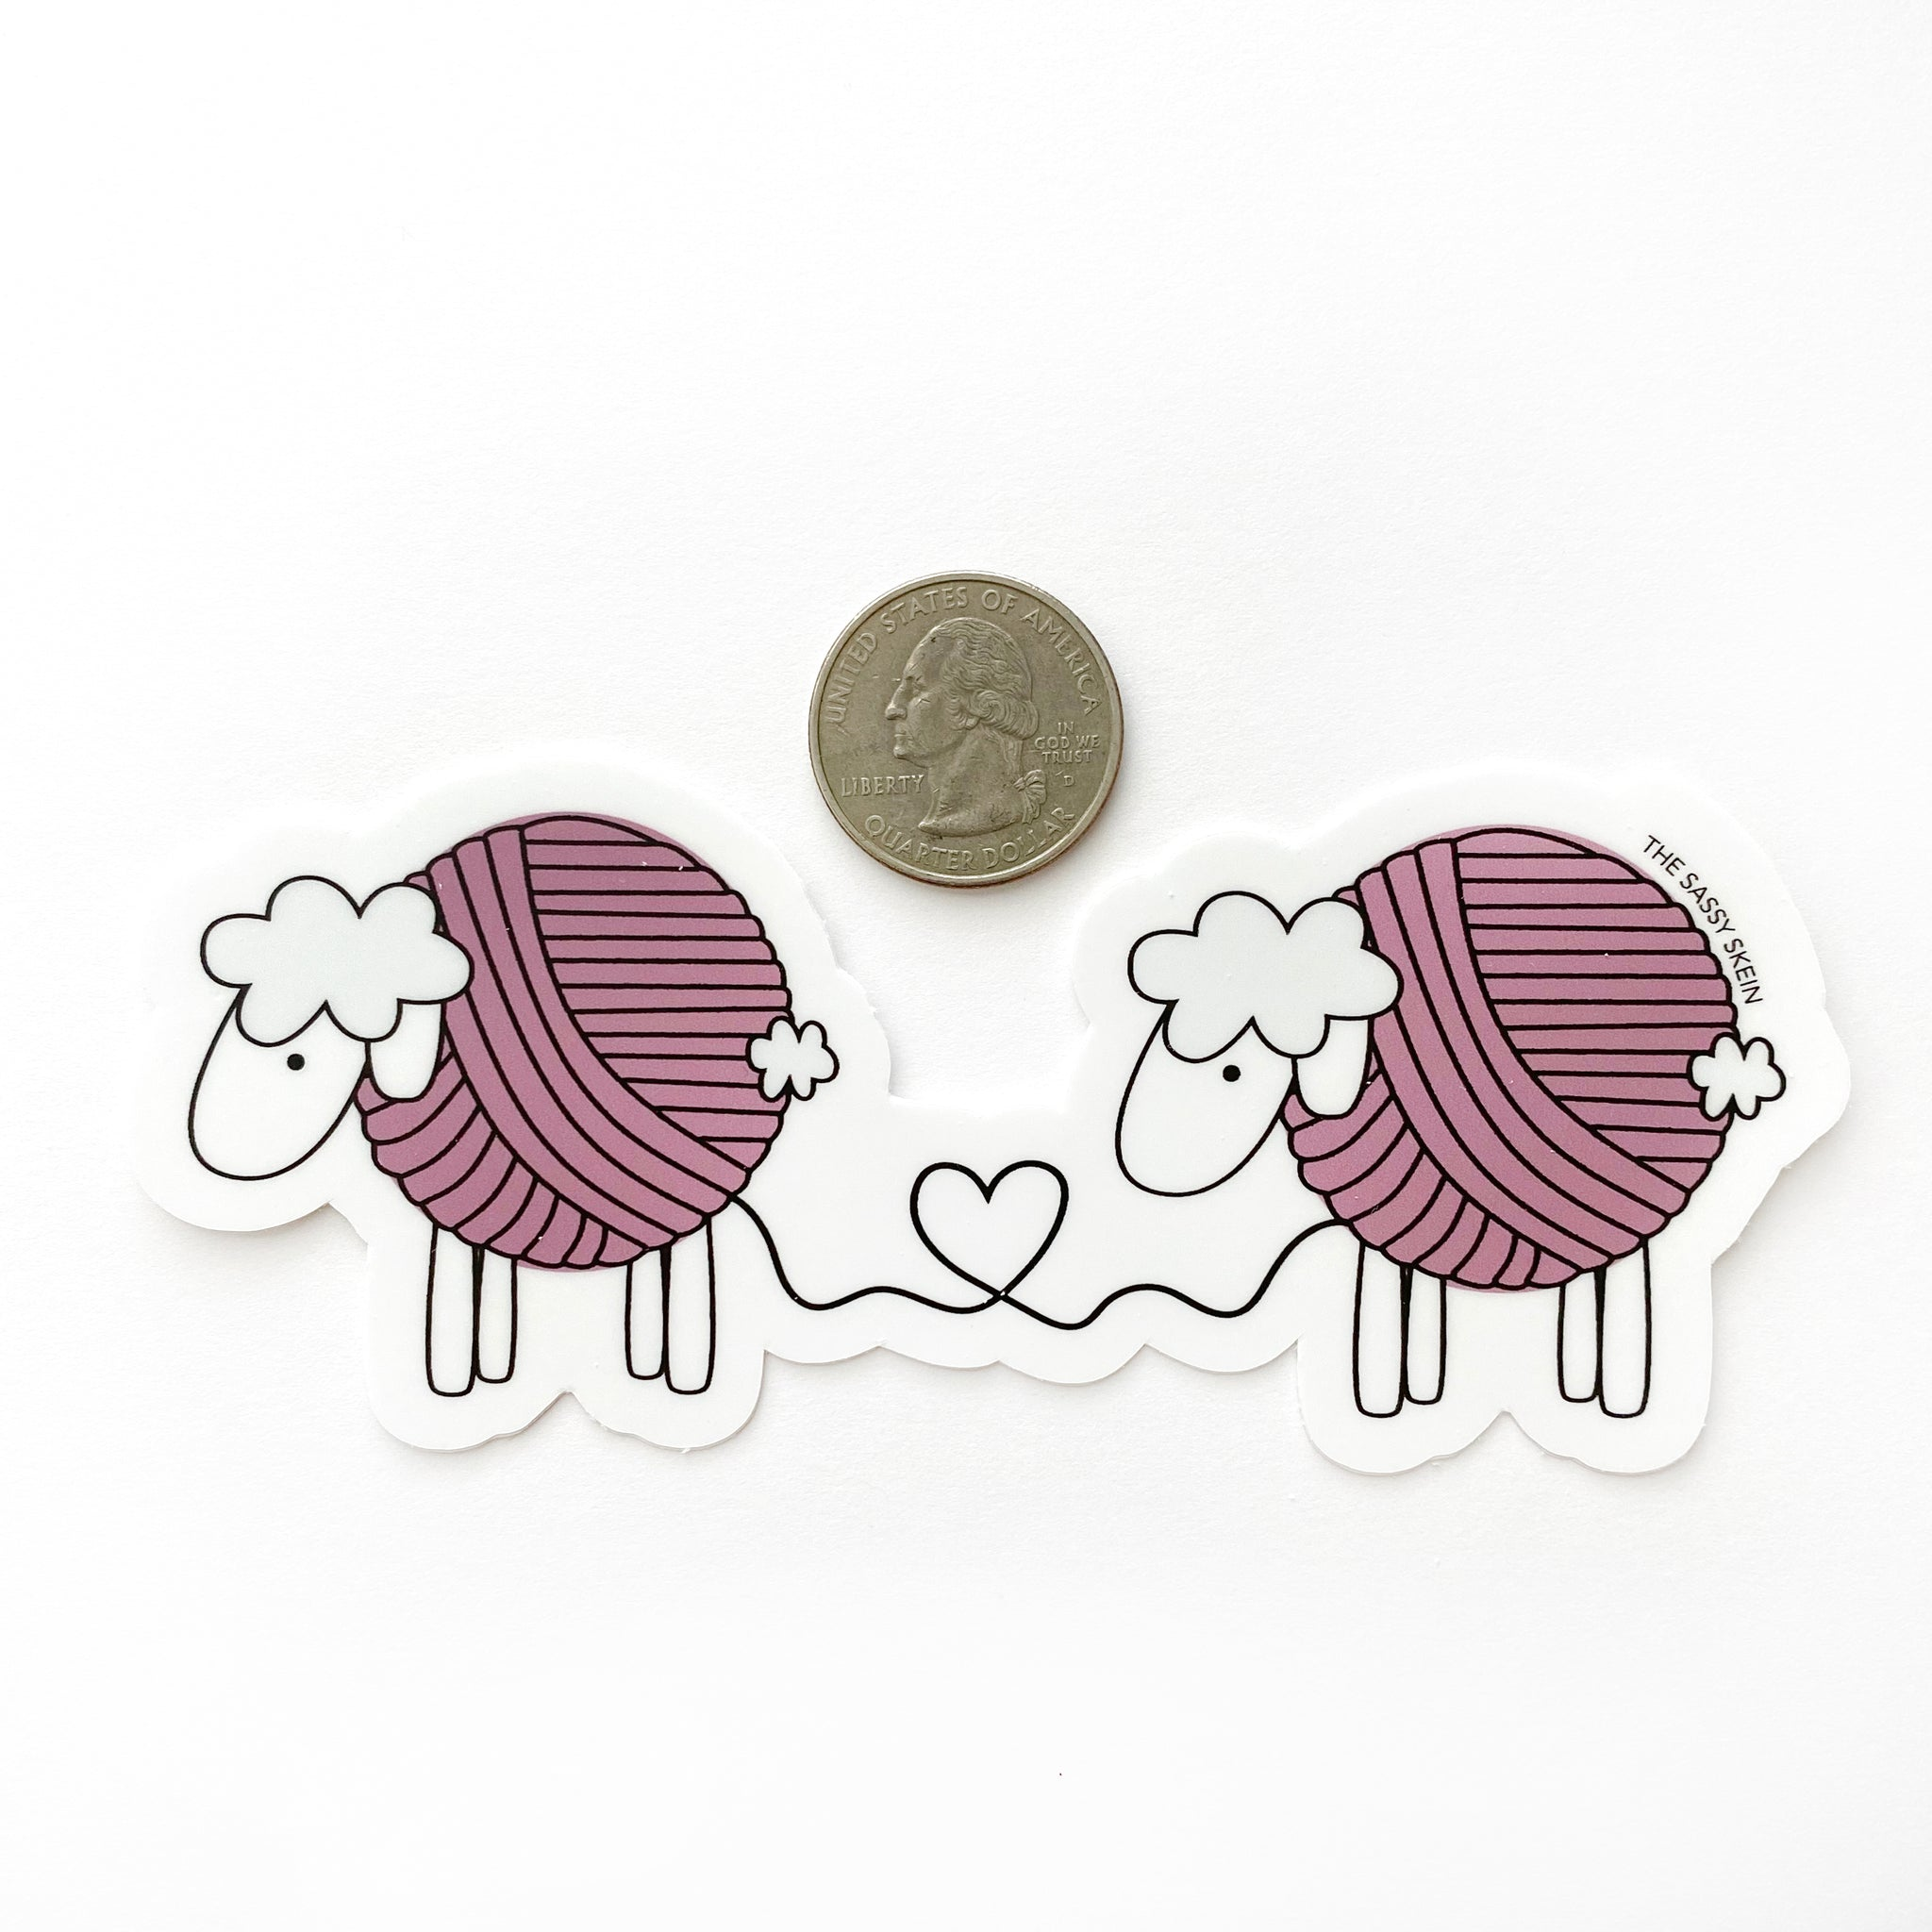 Yarn Sheep Sticker